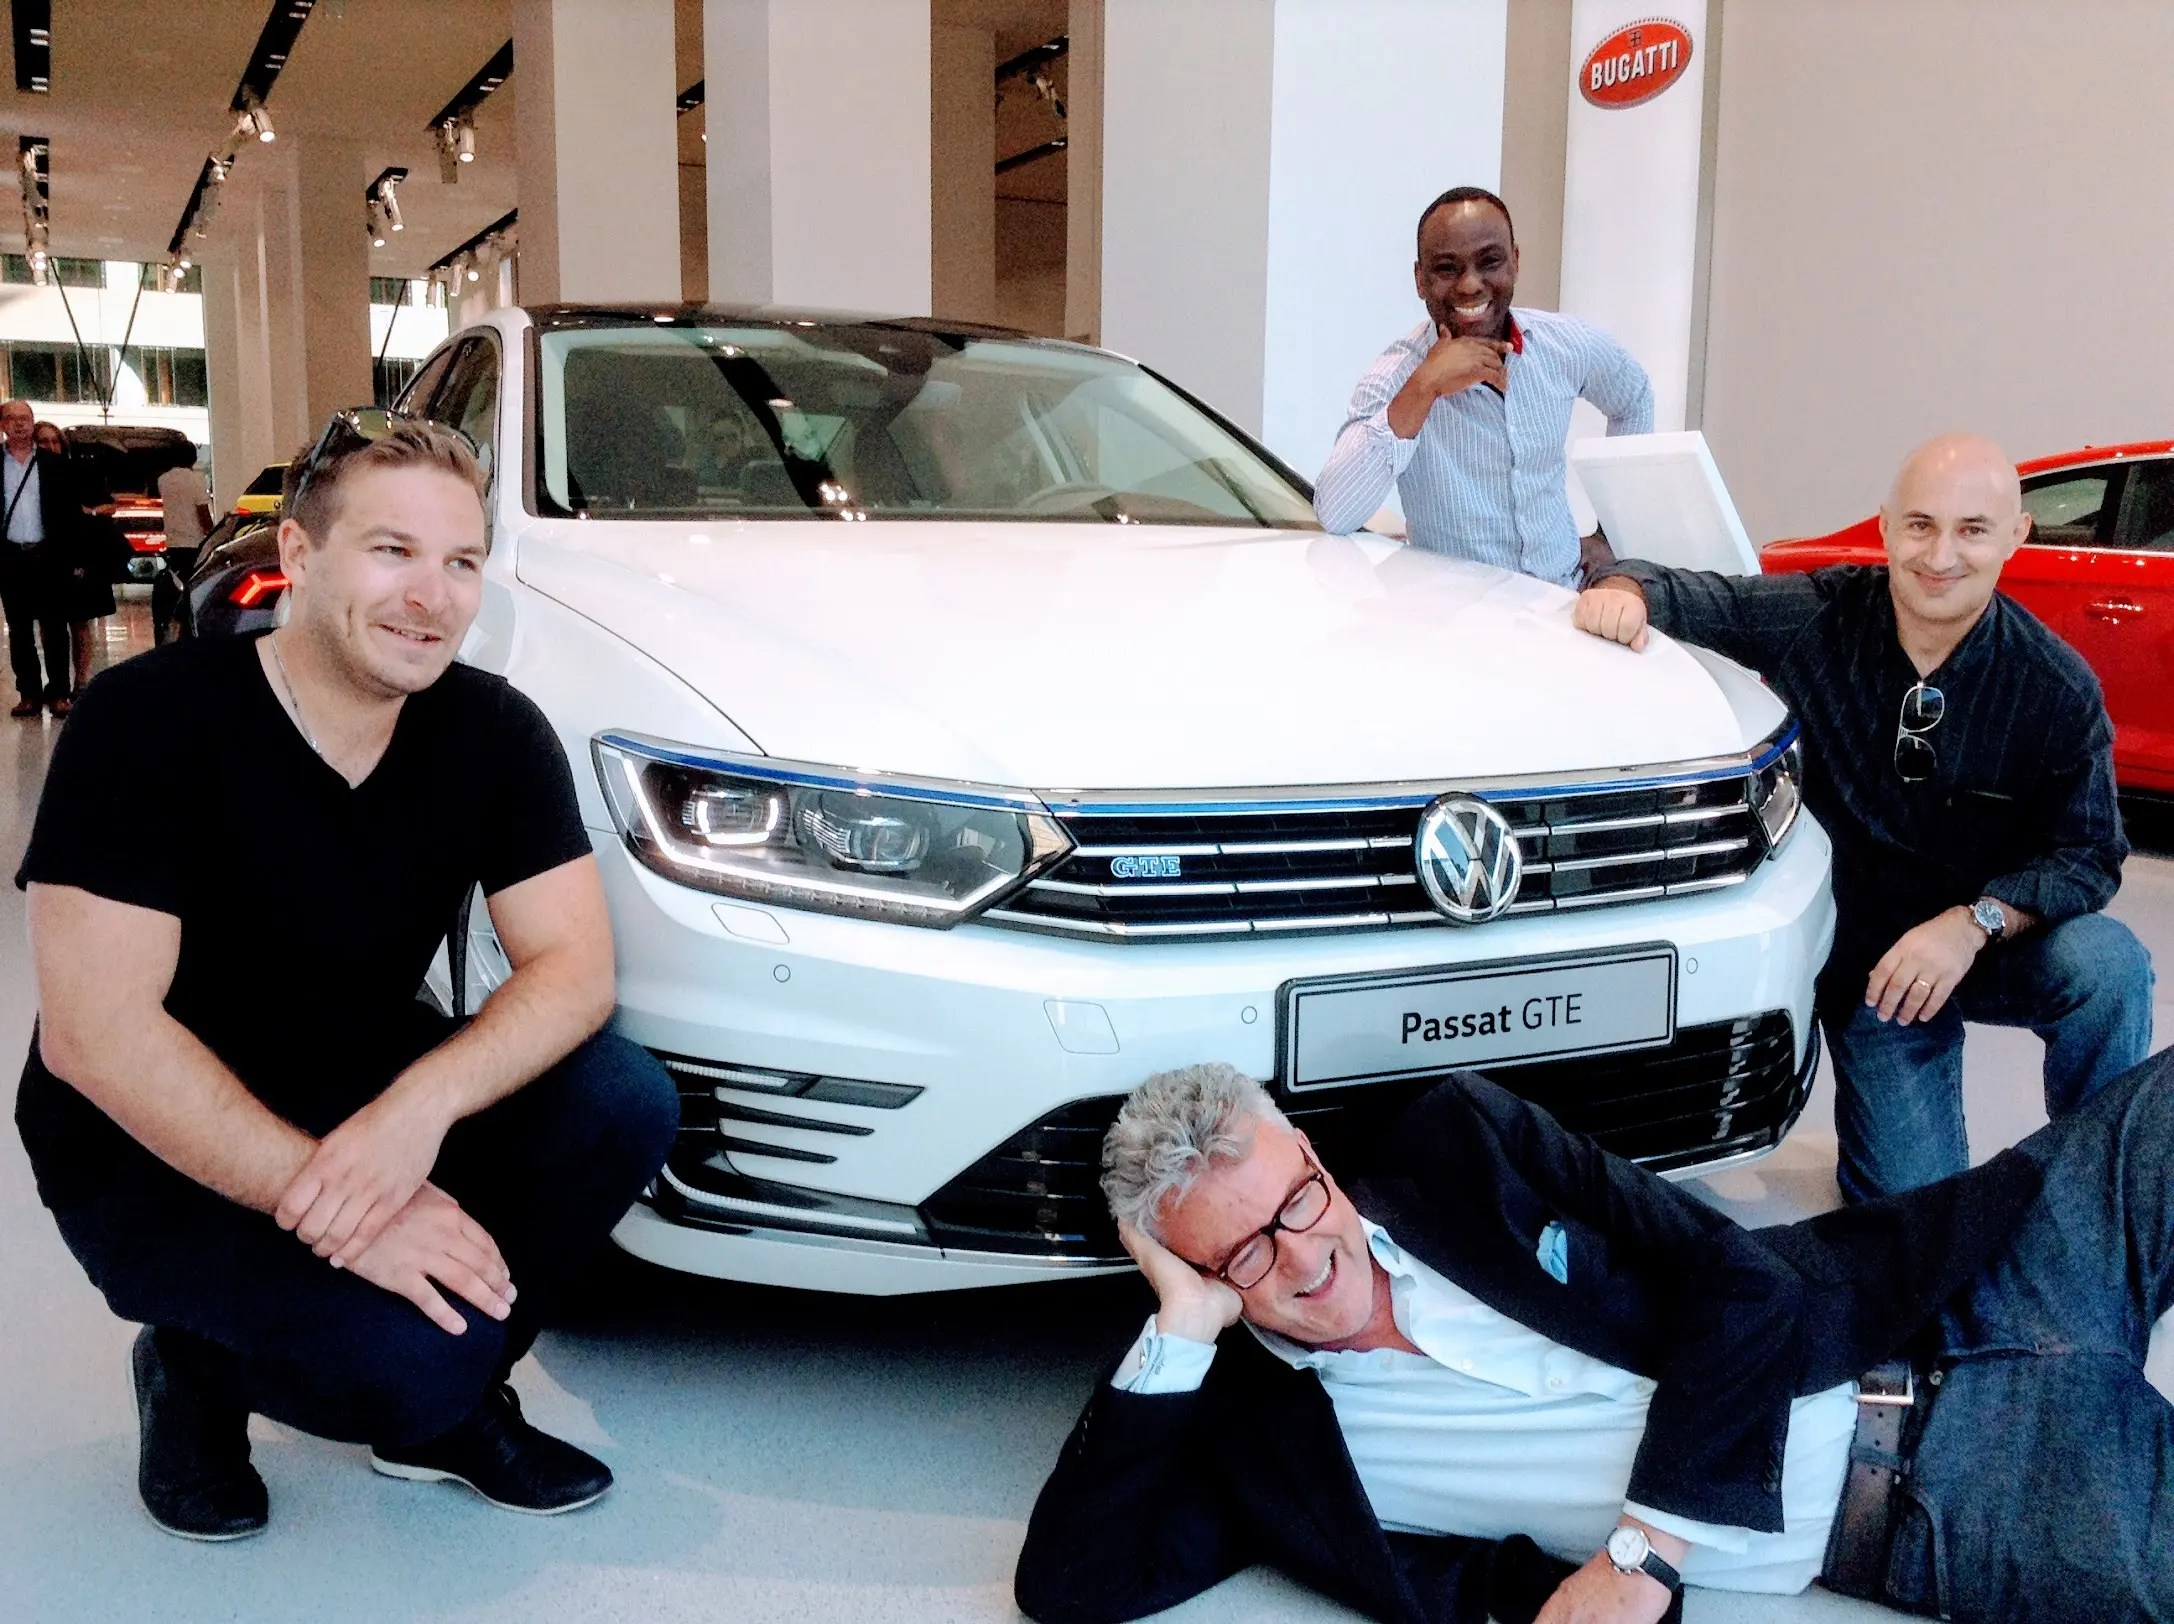 2017 Electric Car Sales Us China Europe Month By Is The Right Plug Here Fords Diagram Download Location 3 Volkswagen Passat Gte Also Profiting From Volkswagens Recent Love For Ins Registered 1352 Units Its Best Result Since January